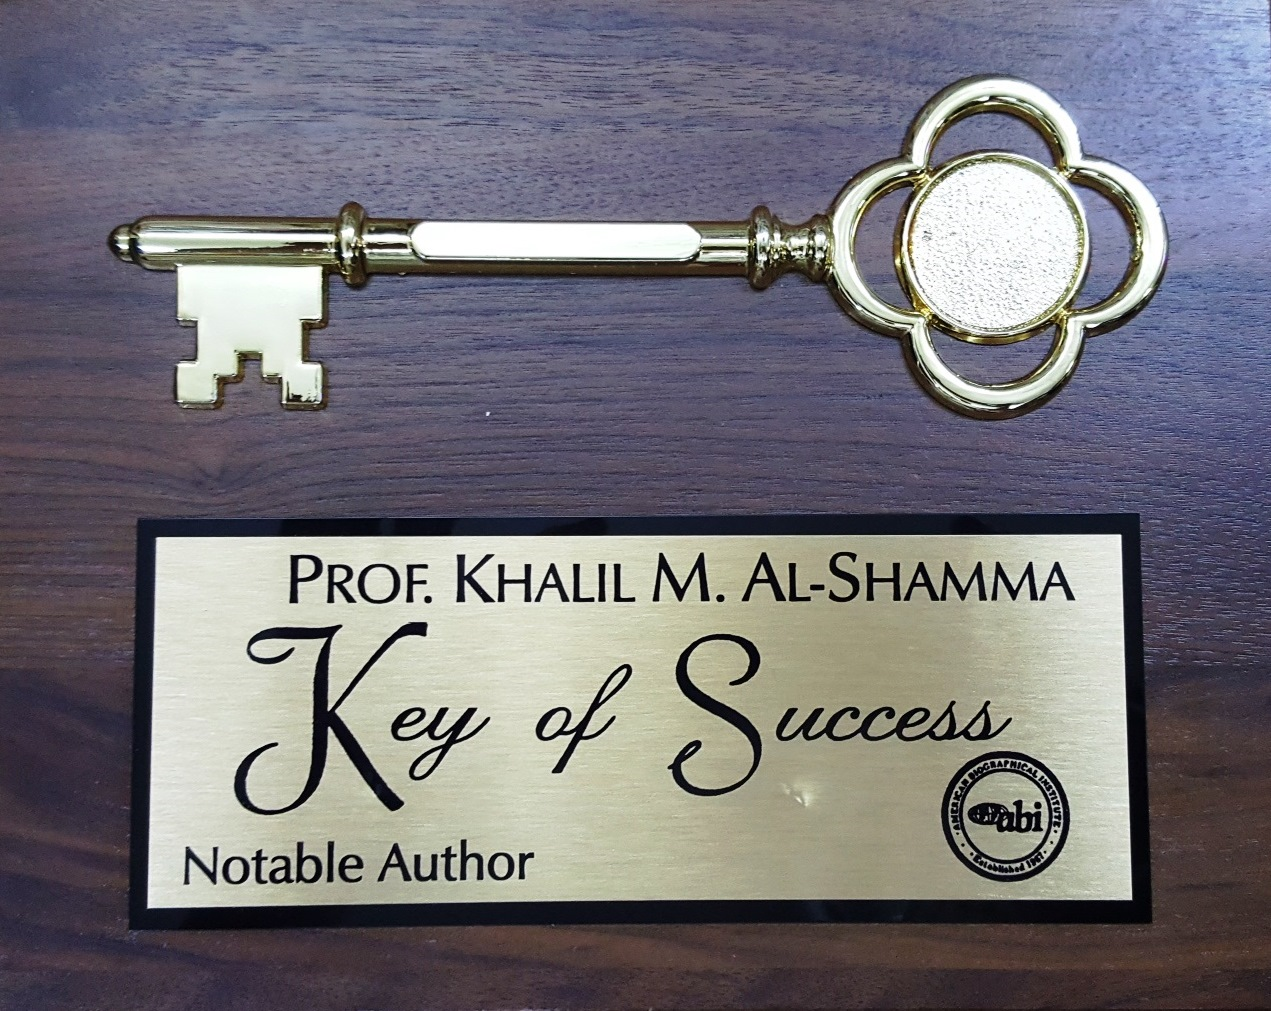 Keys of Success - Notable Author